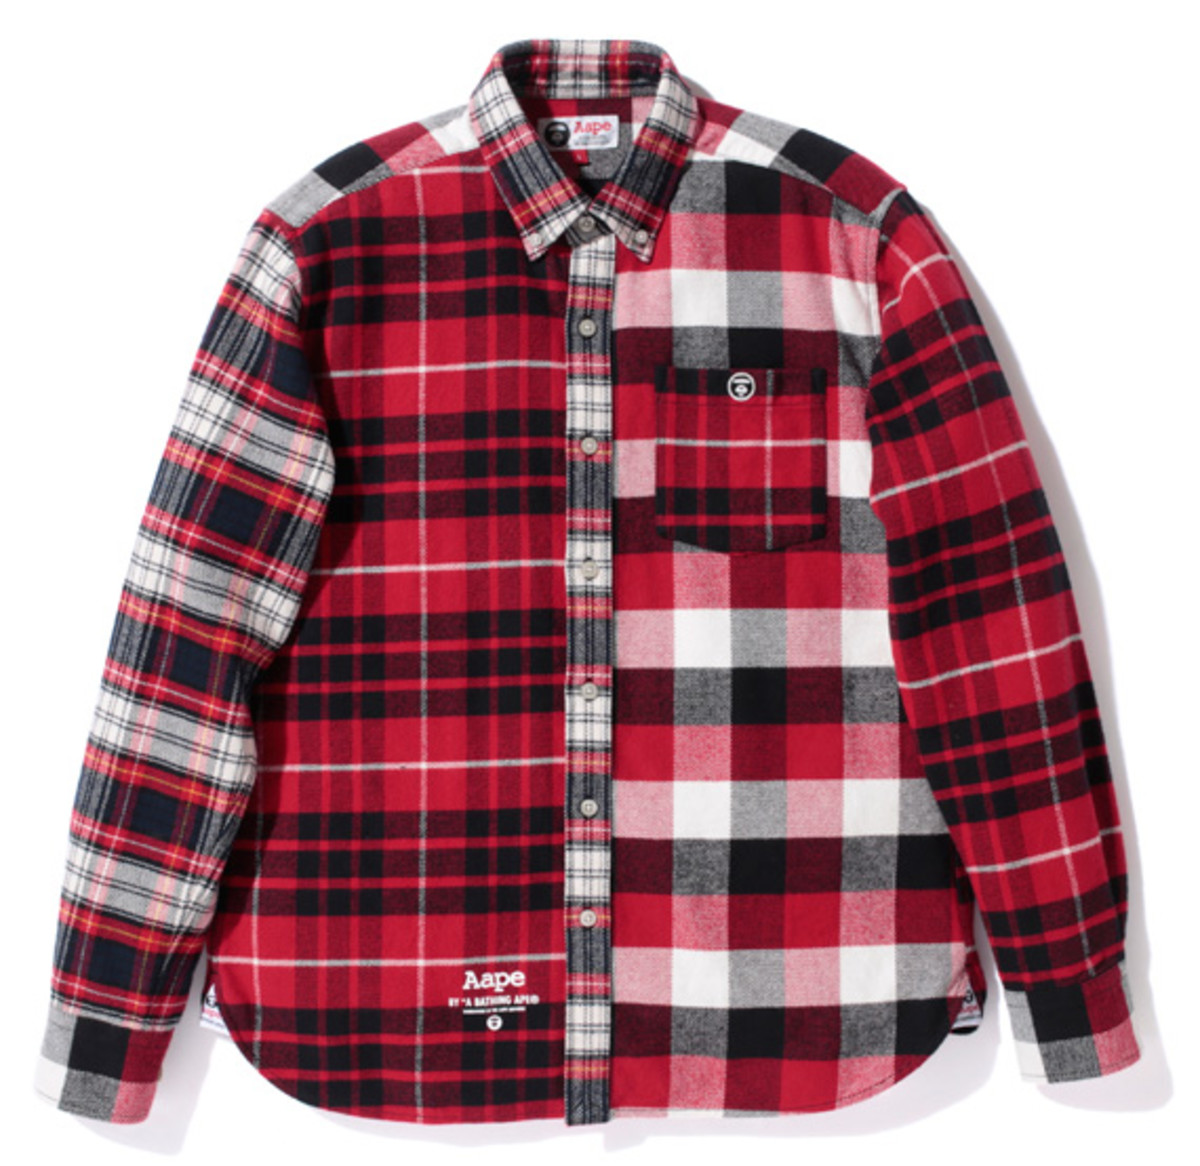 aape-patchwork-check-shirt-02